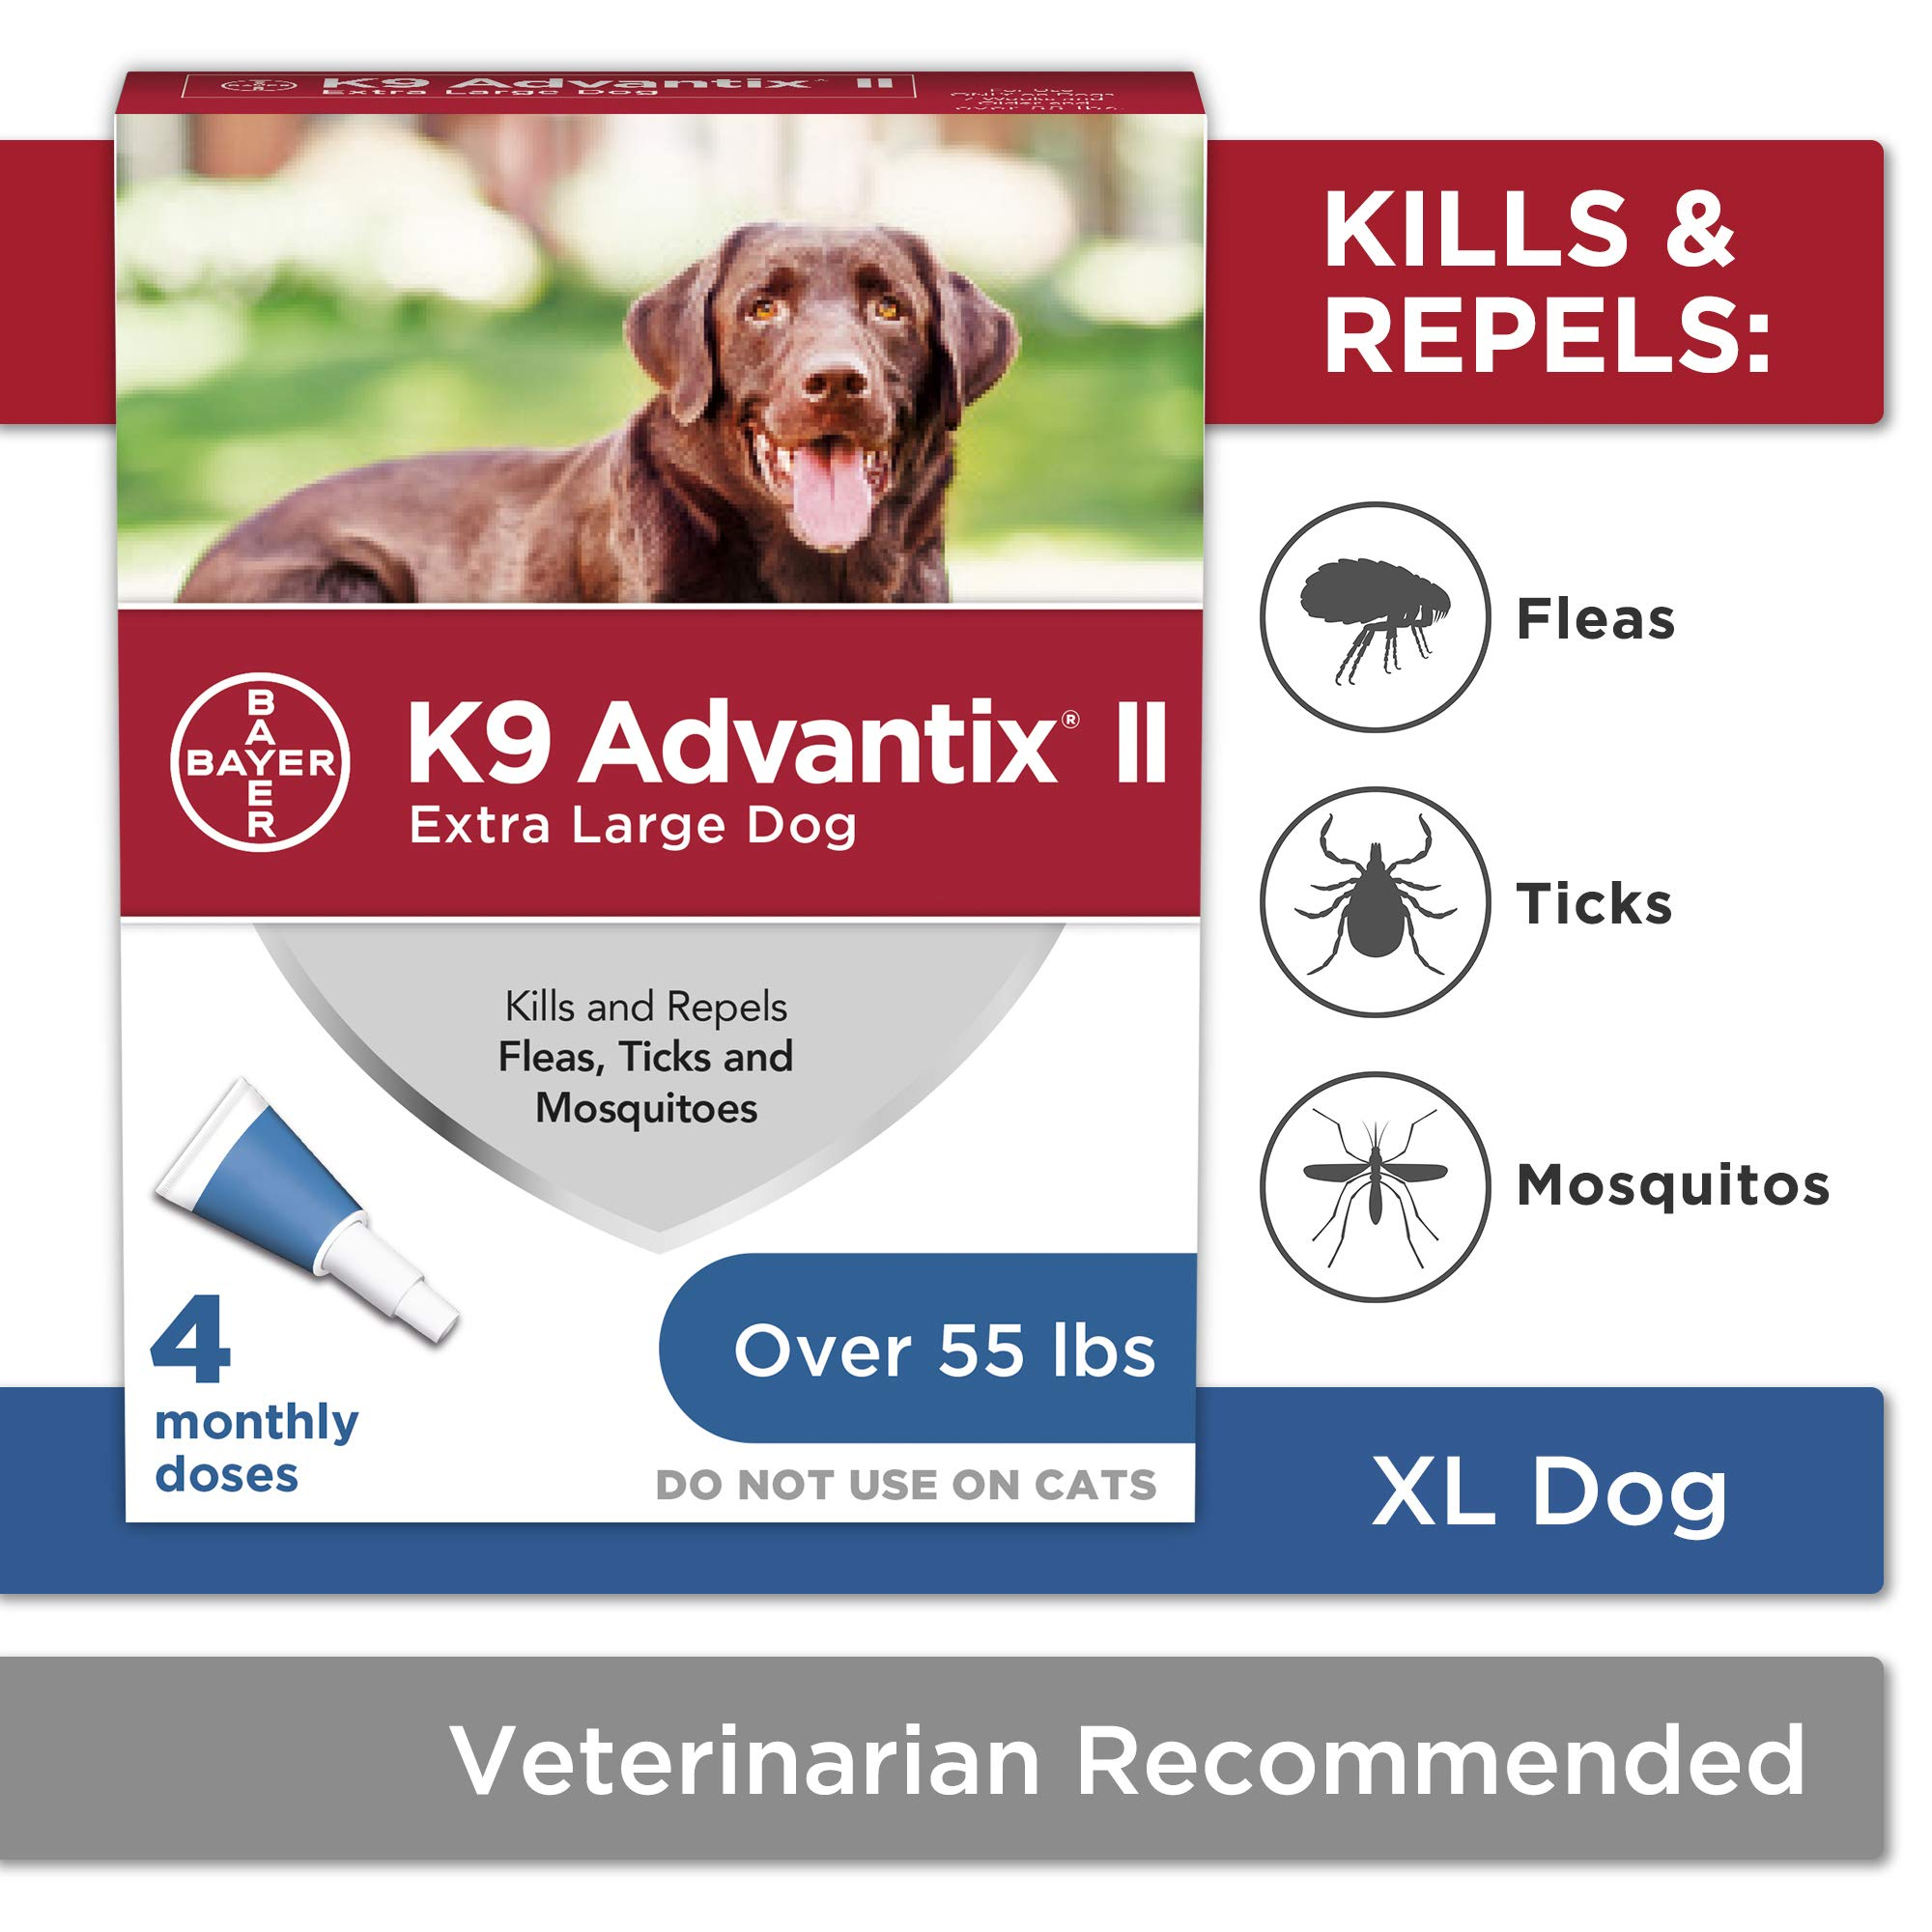 Bayer K9 Advantix II Flea, Tick and Mosquito Prevention for X-Large Dogs, Over 55 lb, 4 doses by Bayer Animal Health